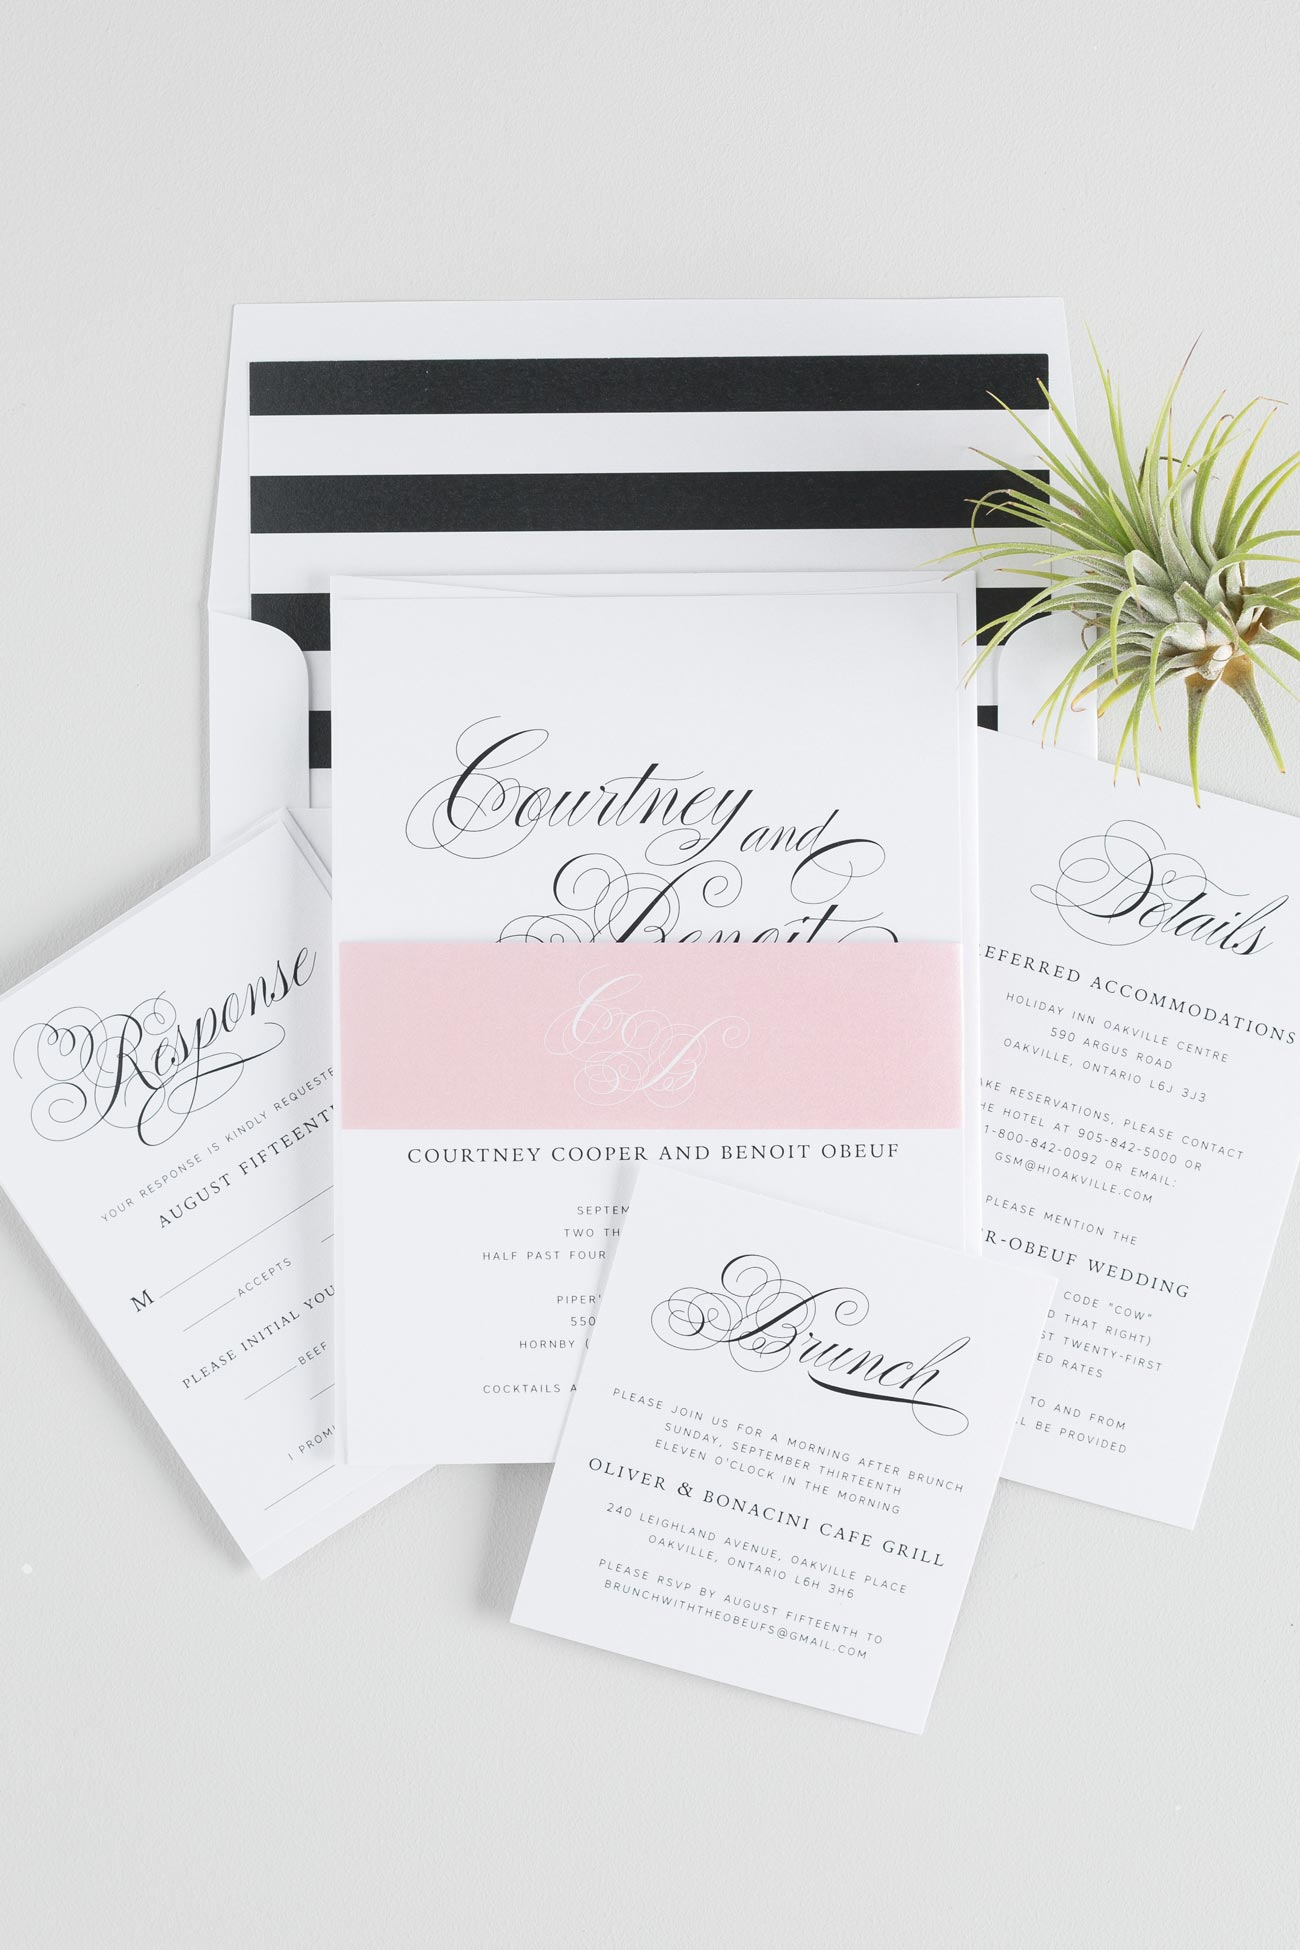 Black and White Striped Calligraphy Wedding Invitations with blush accents